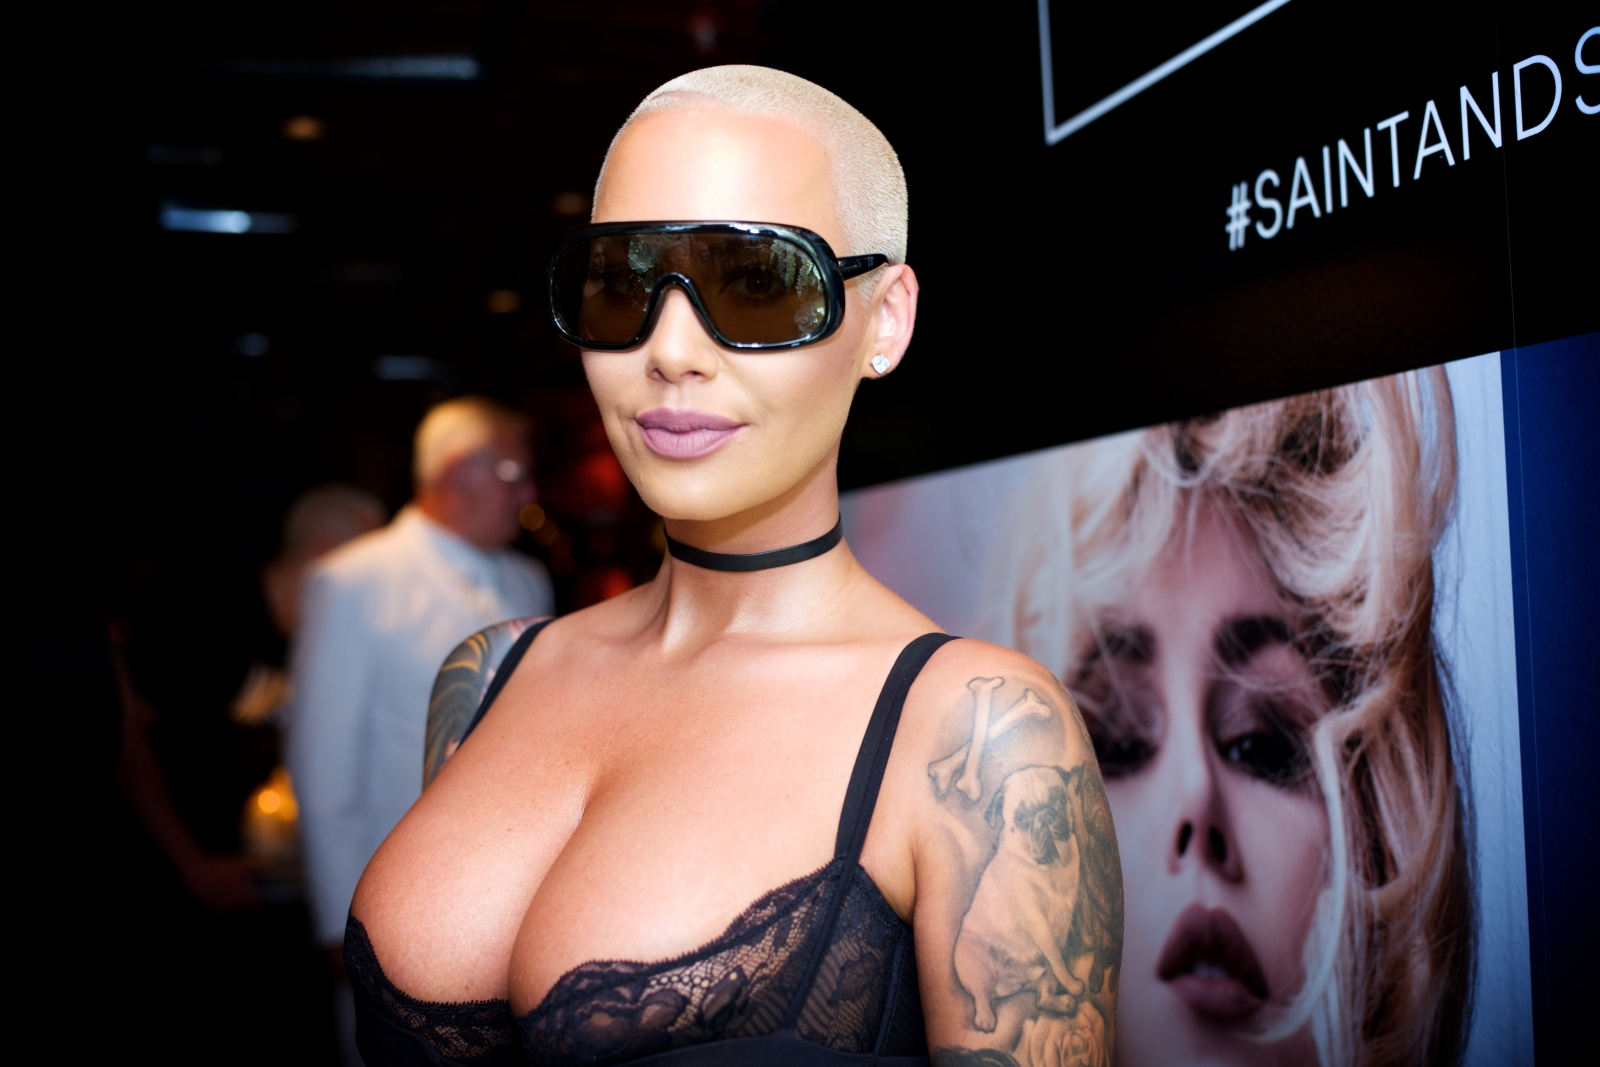 Amber Rose claims Kanye West 'constantly bullied' her for years: 'I was going to kill myself'